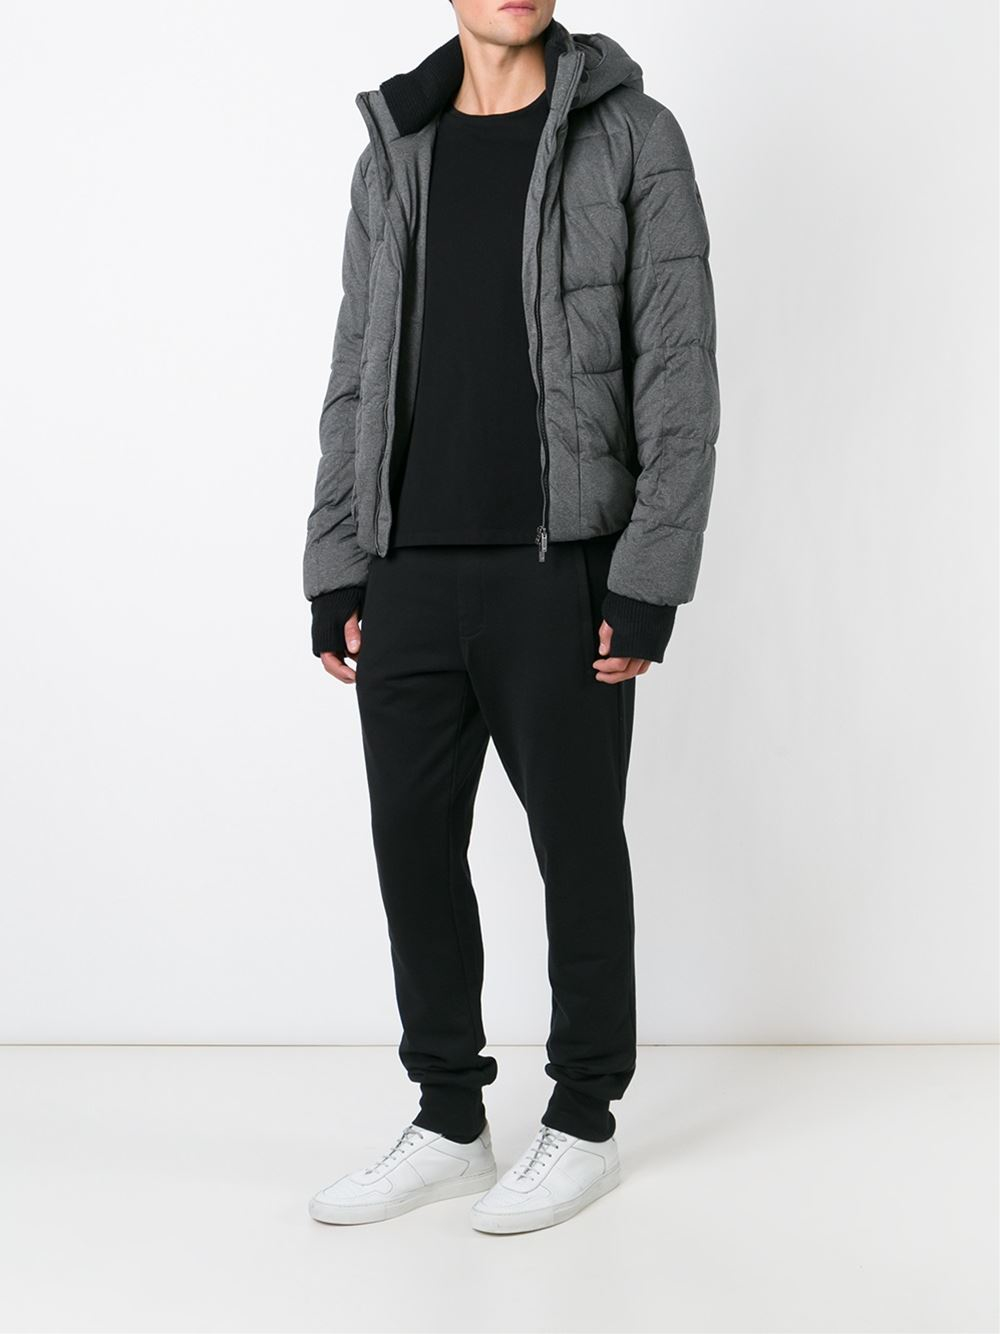 Armani jeans Hooded Padded Jacket in Gray for Men   Lyst : armani jeans quilted jacket - Adamdwight.com